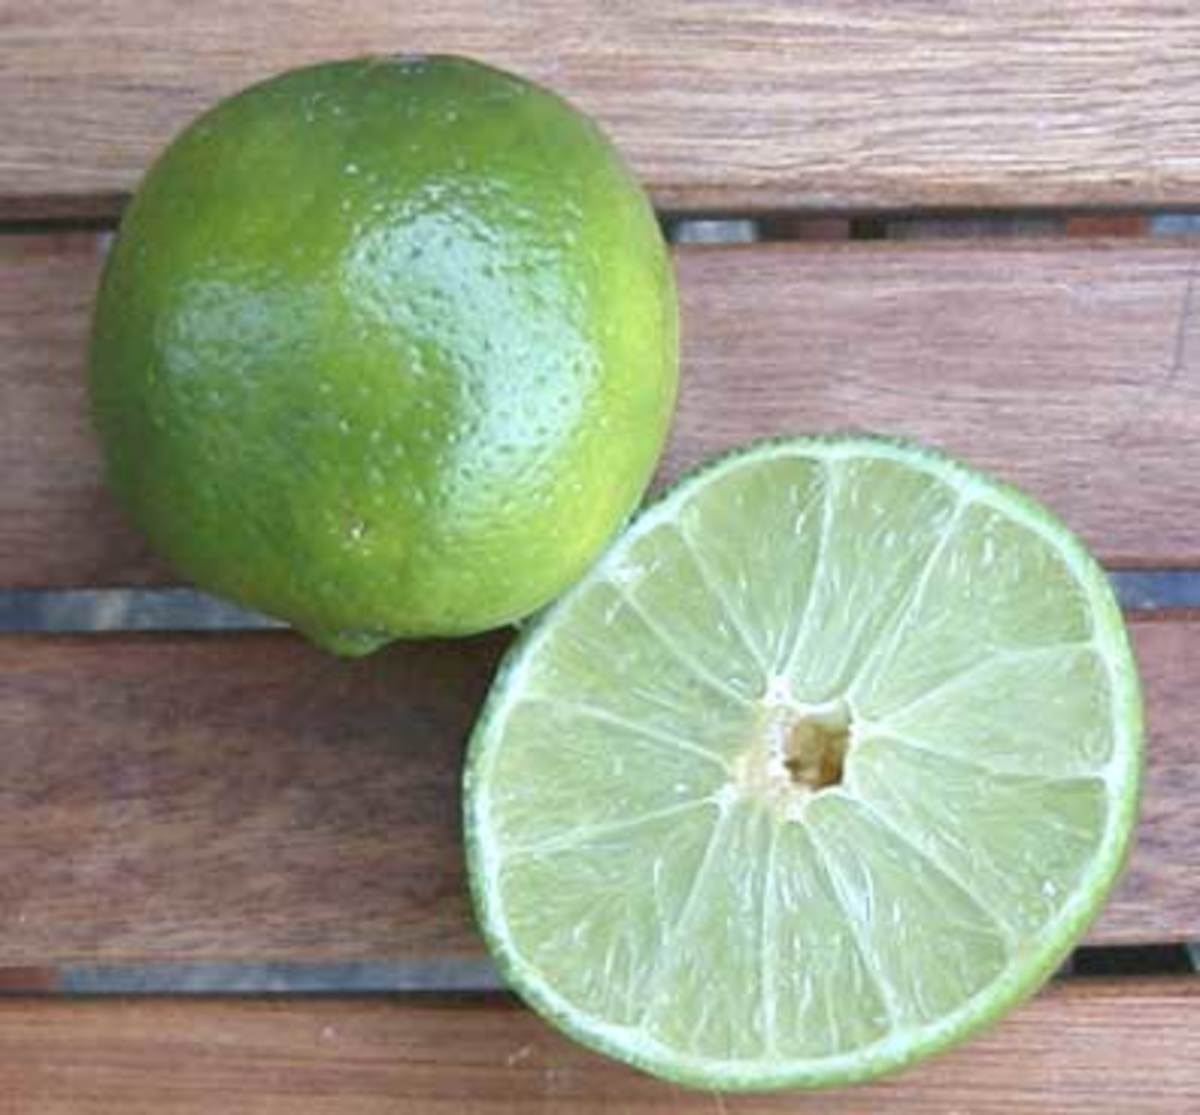 Easy 1 minute lemonaid. Get some citric acid and make easy lemonaid, and also be a better cook!!